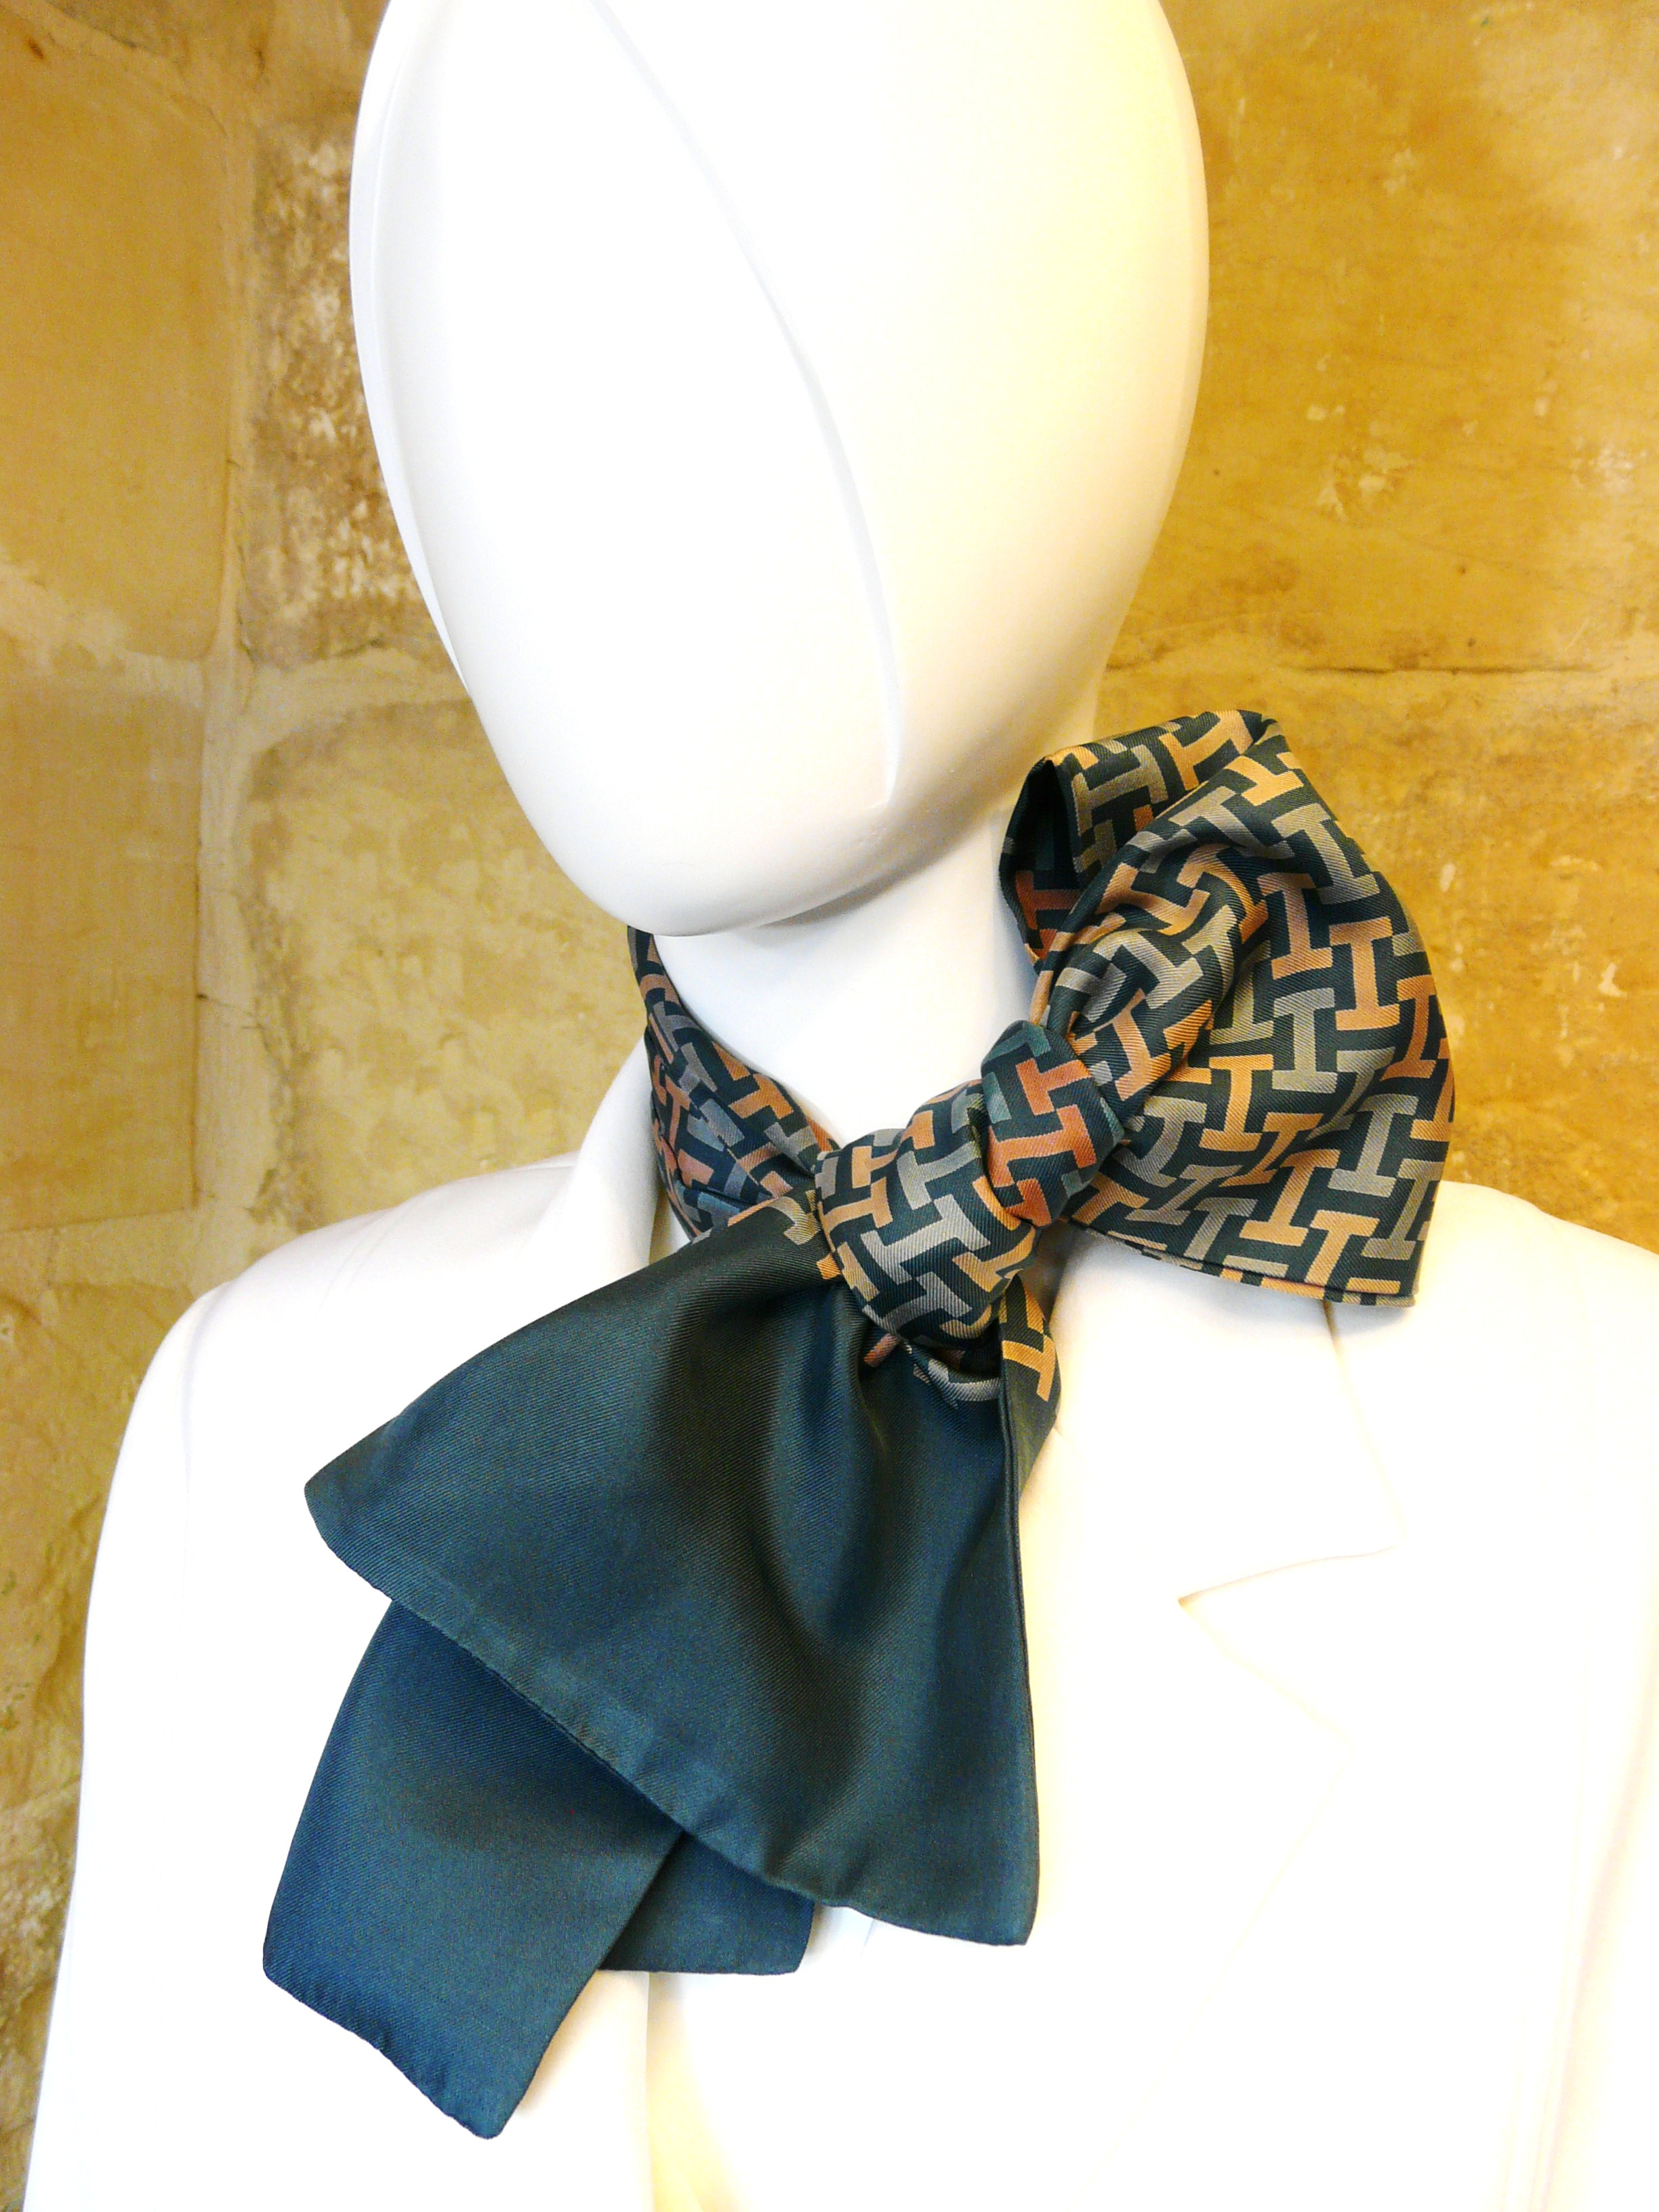 An Ascot...not just for men anymore